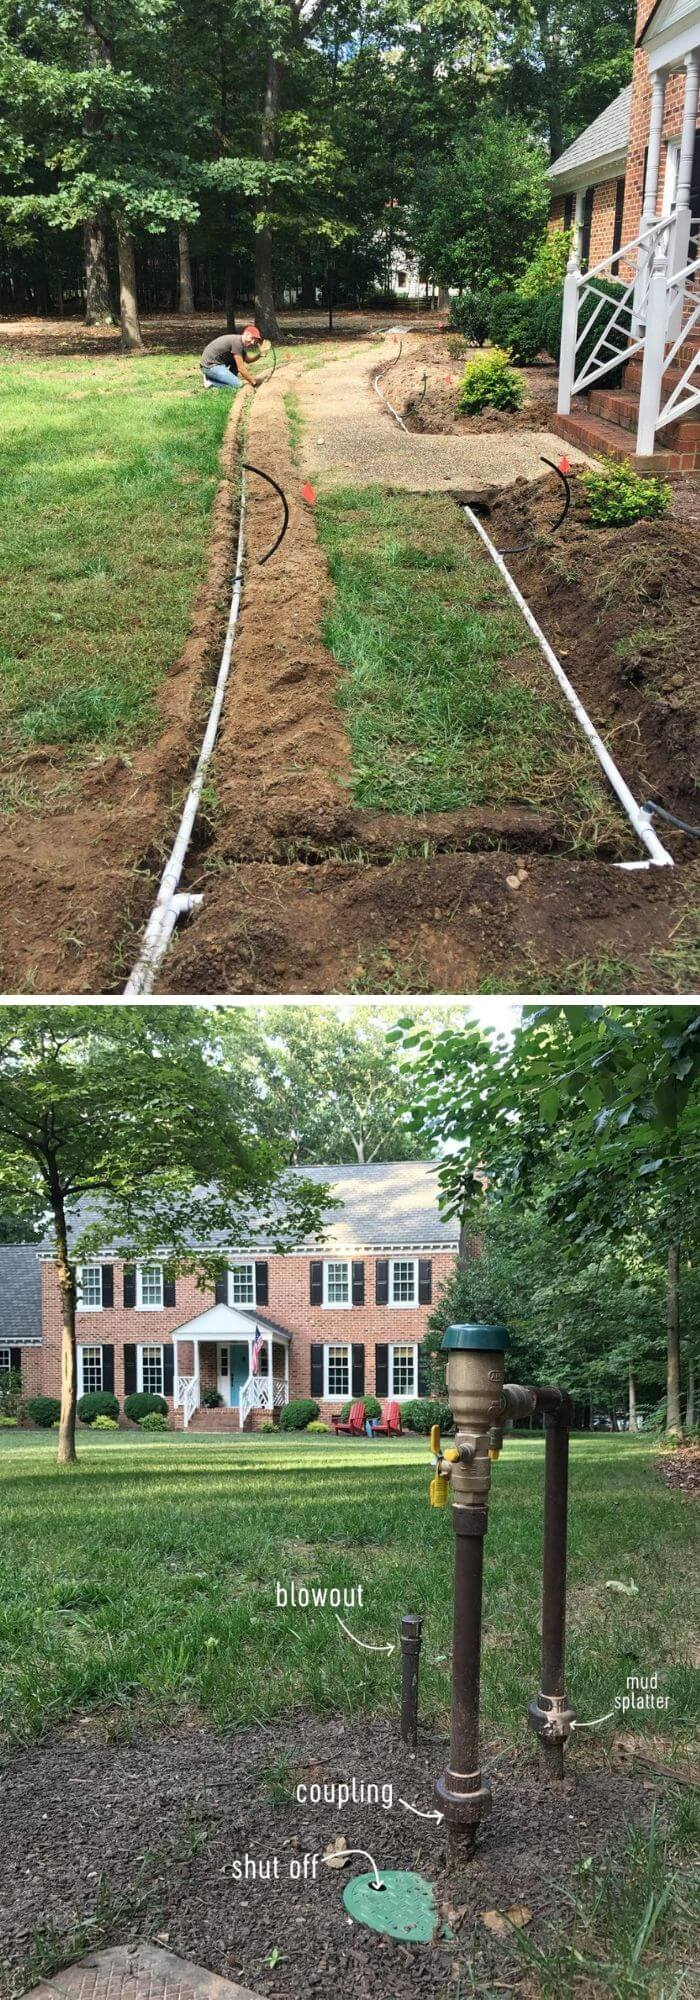 17 Best Diy Sprinkler System Ideas For Your Yard This 2019